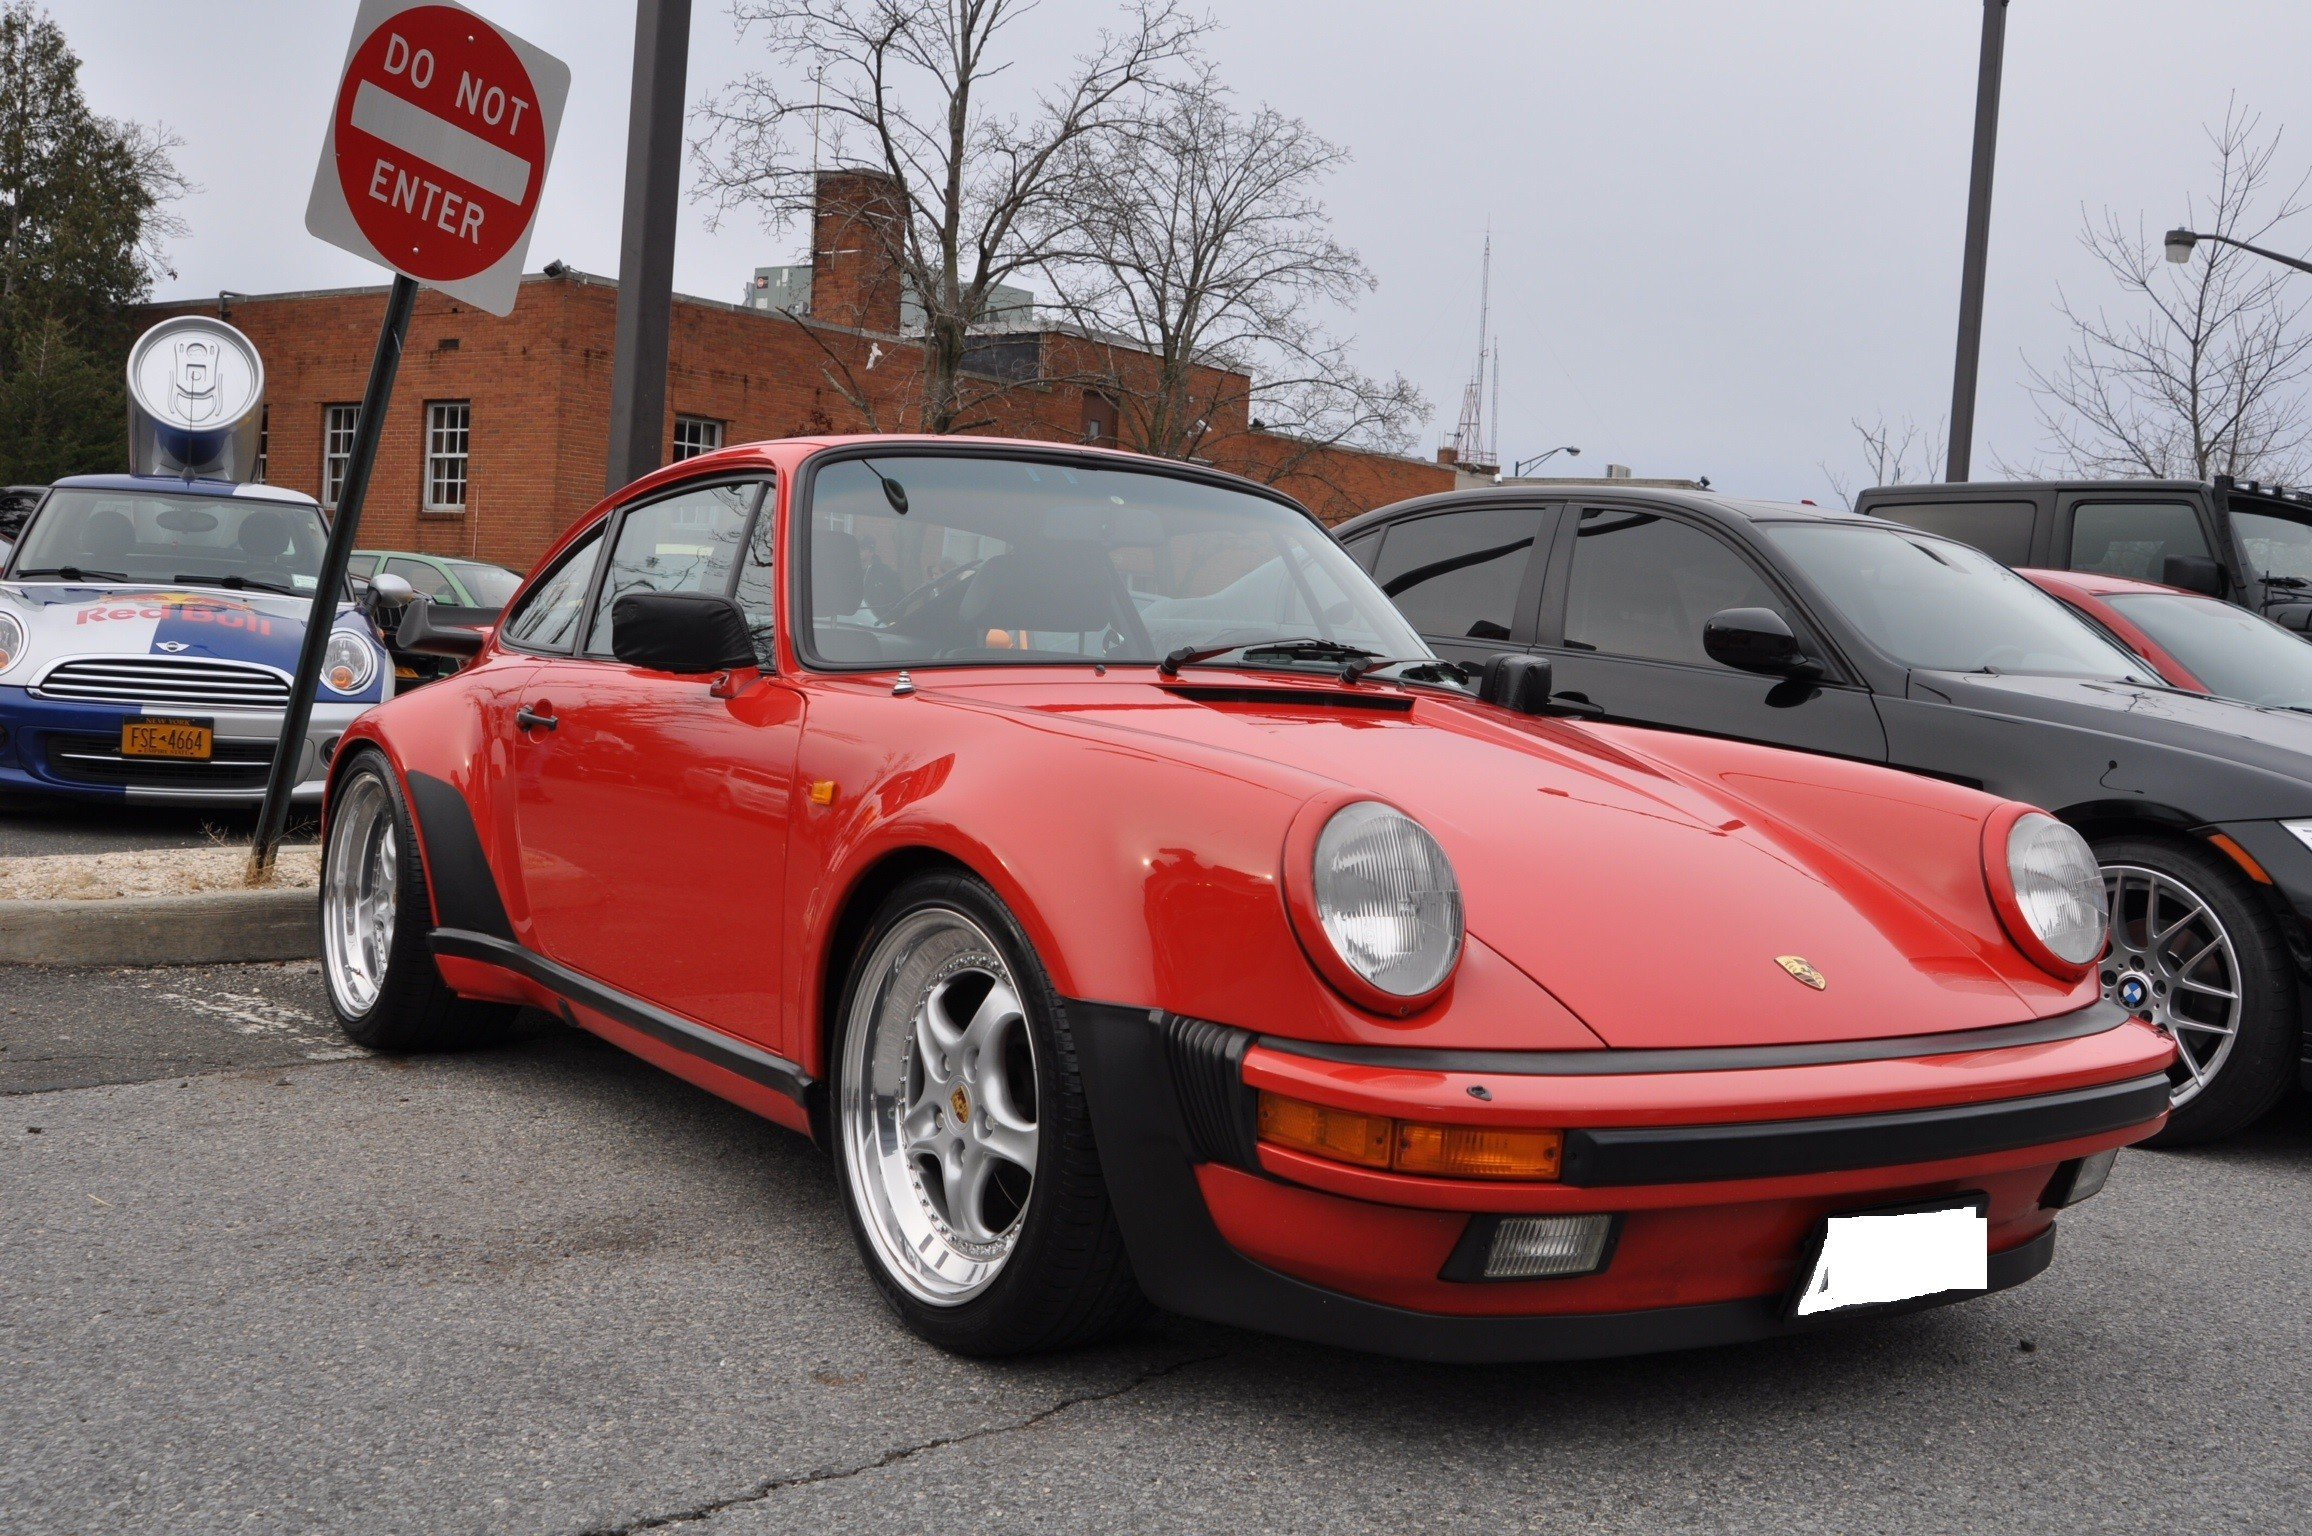 Old Porsche For Sale >> 1984 Porsche 911 Classics For Sale Classics On Autotrader